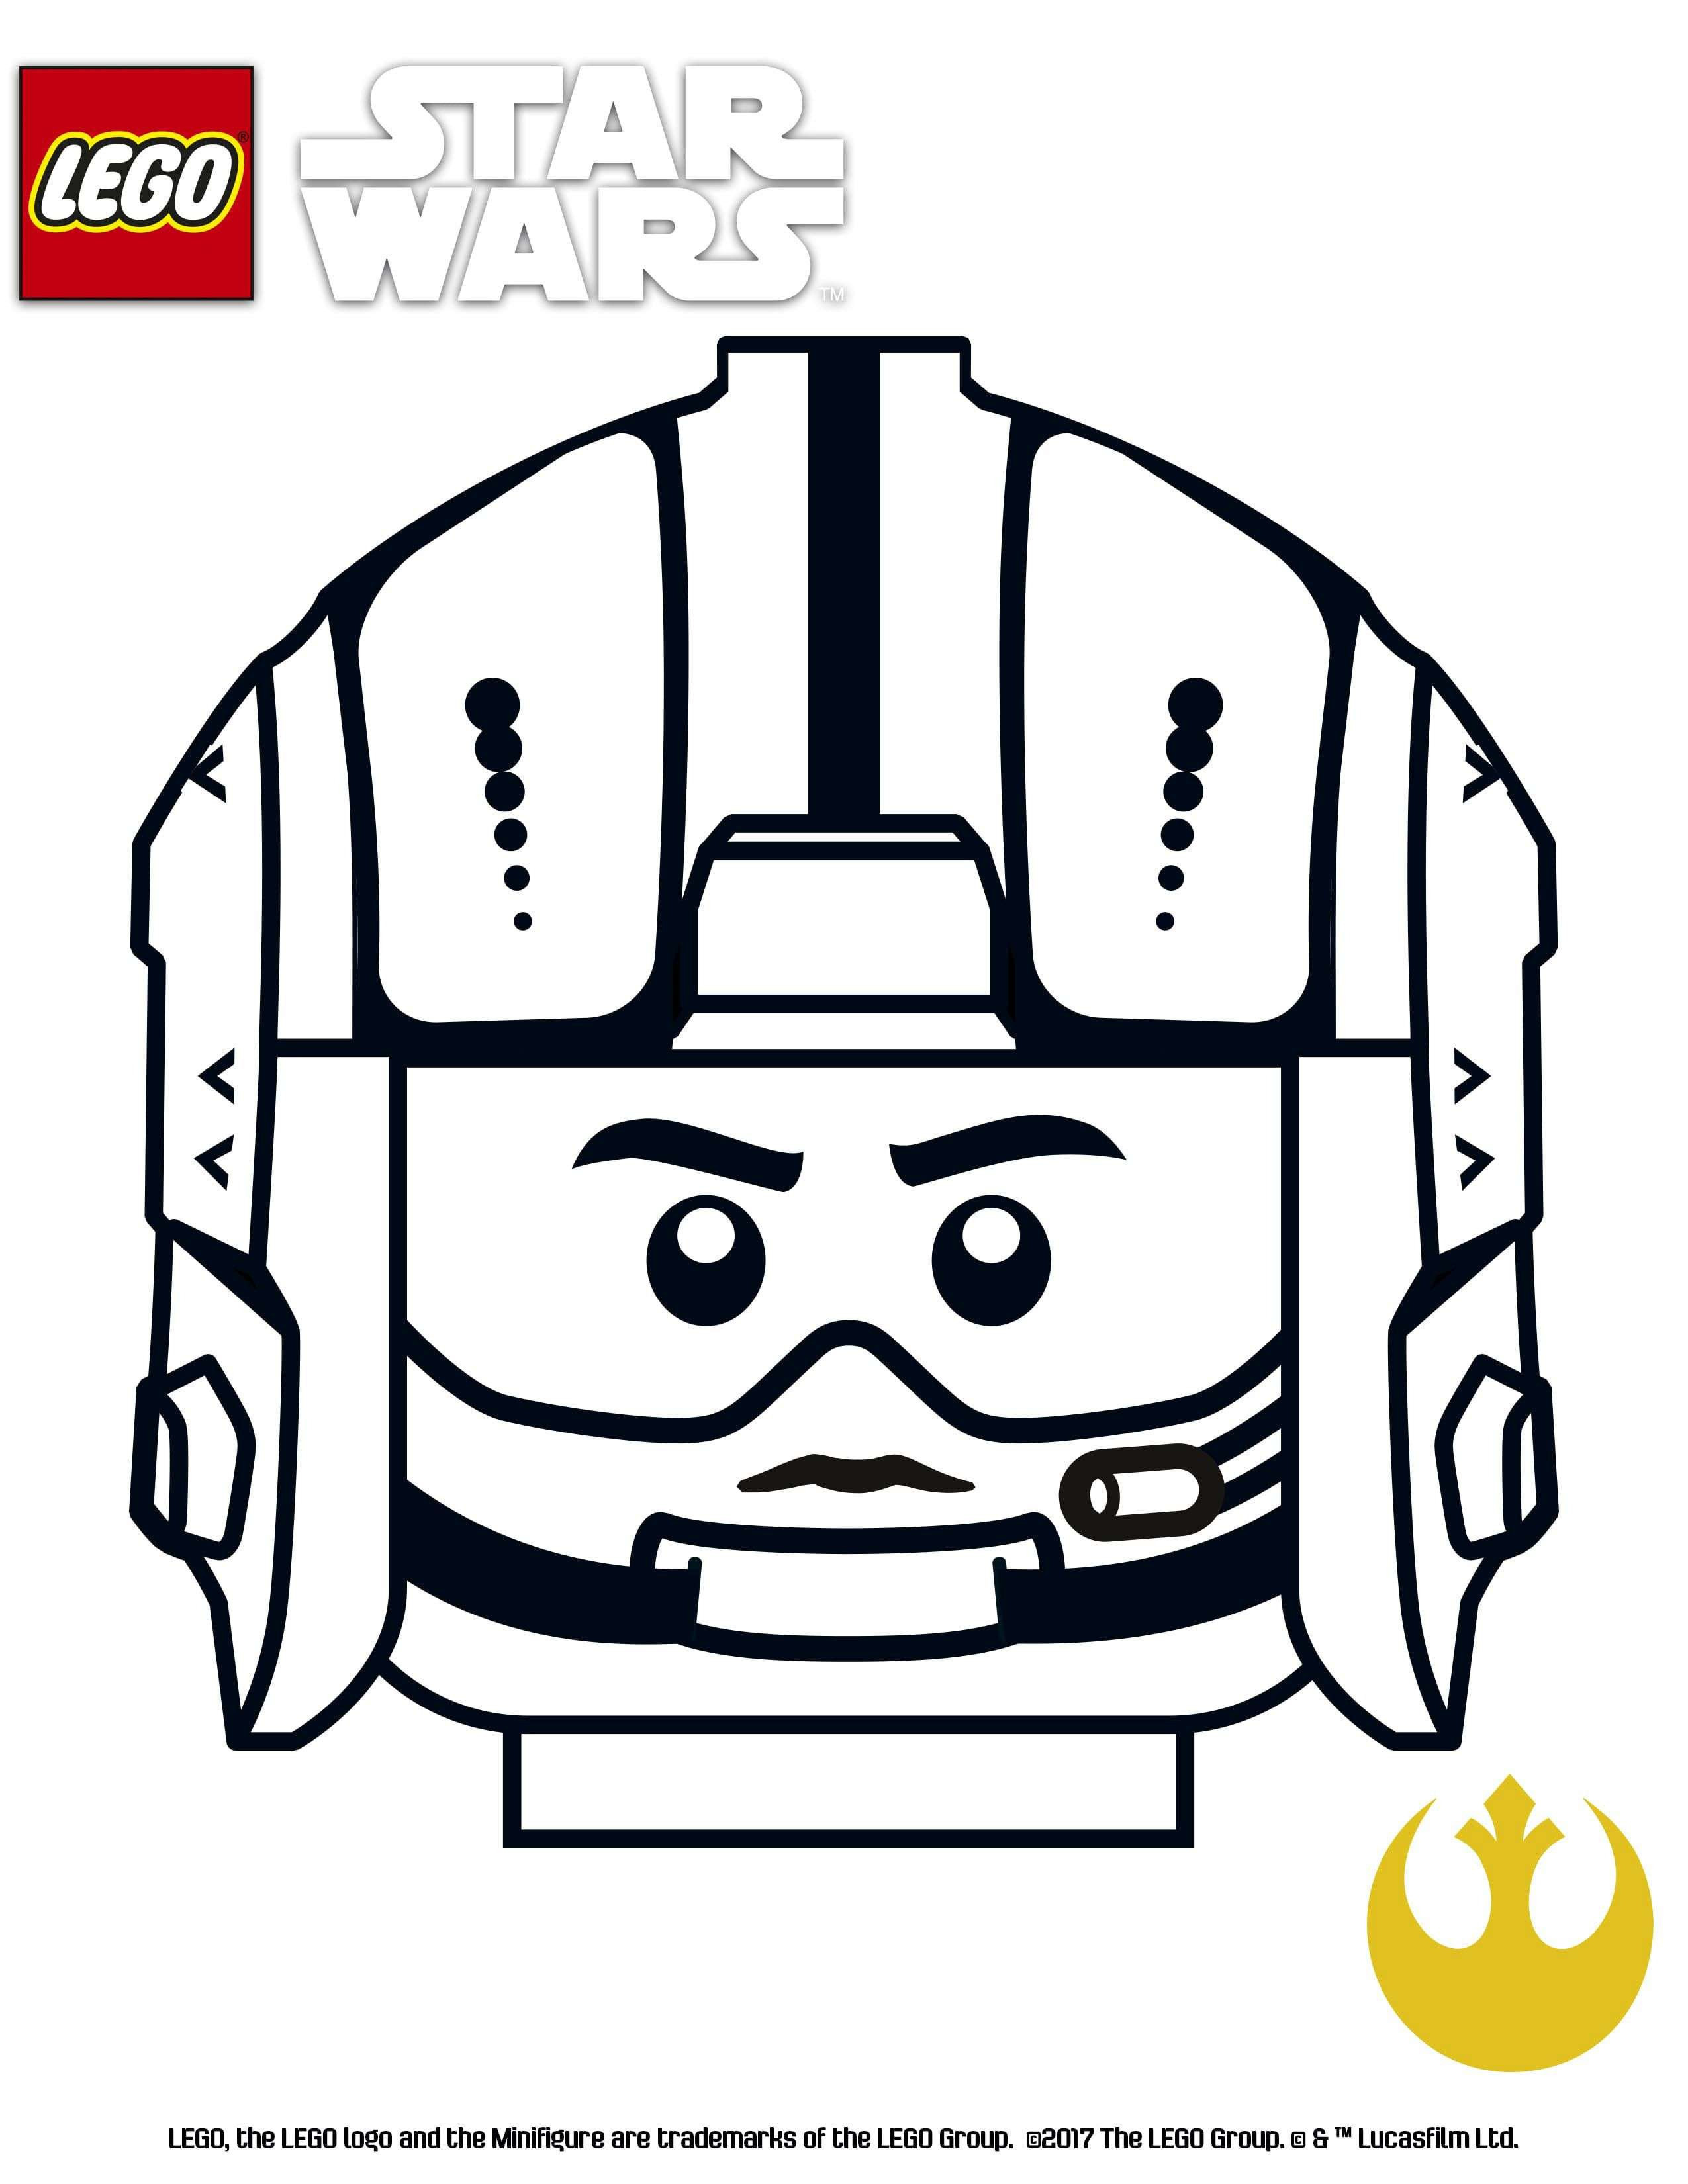 Lego Star Wars Malvorlagen Das Beste Von Lego Starwars Coloring Pages Christmas Coloring Pages Lego Schön Bilder